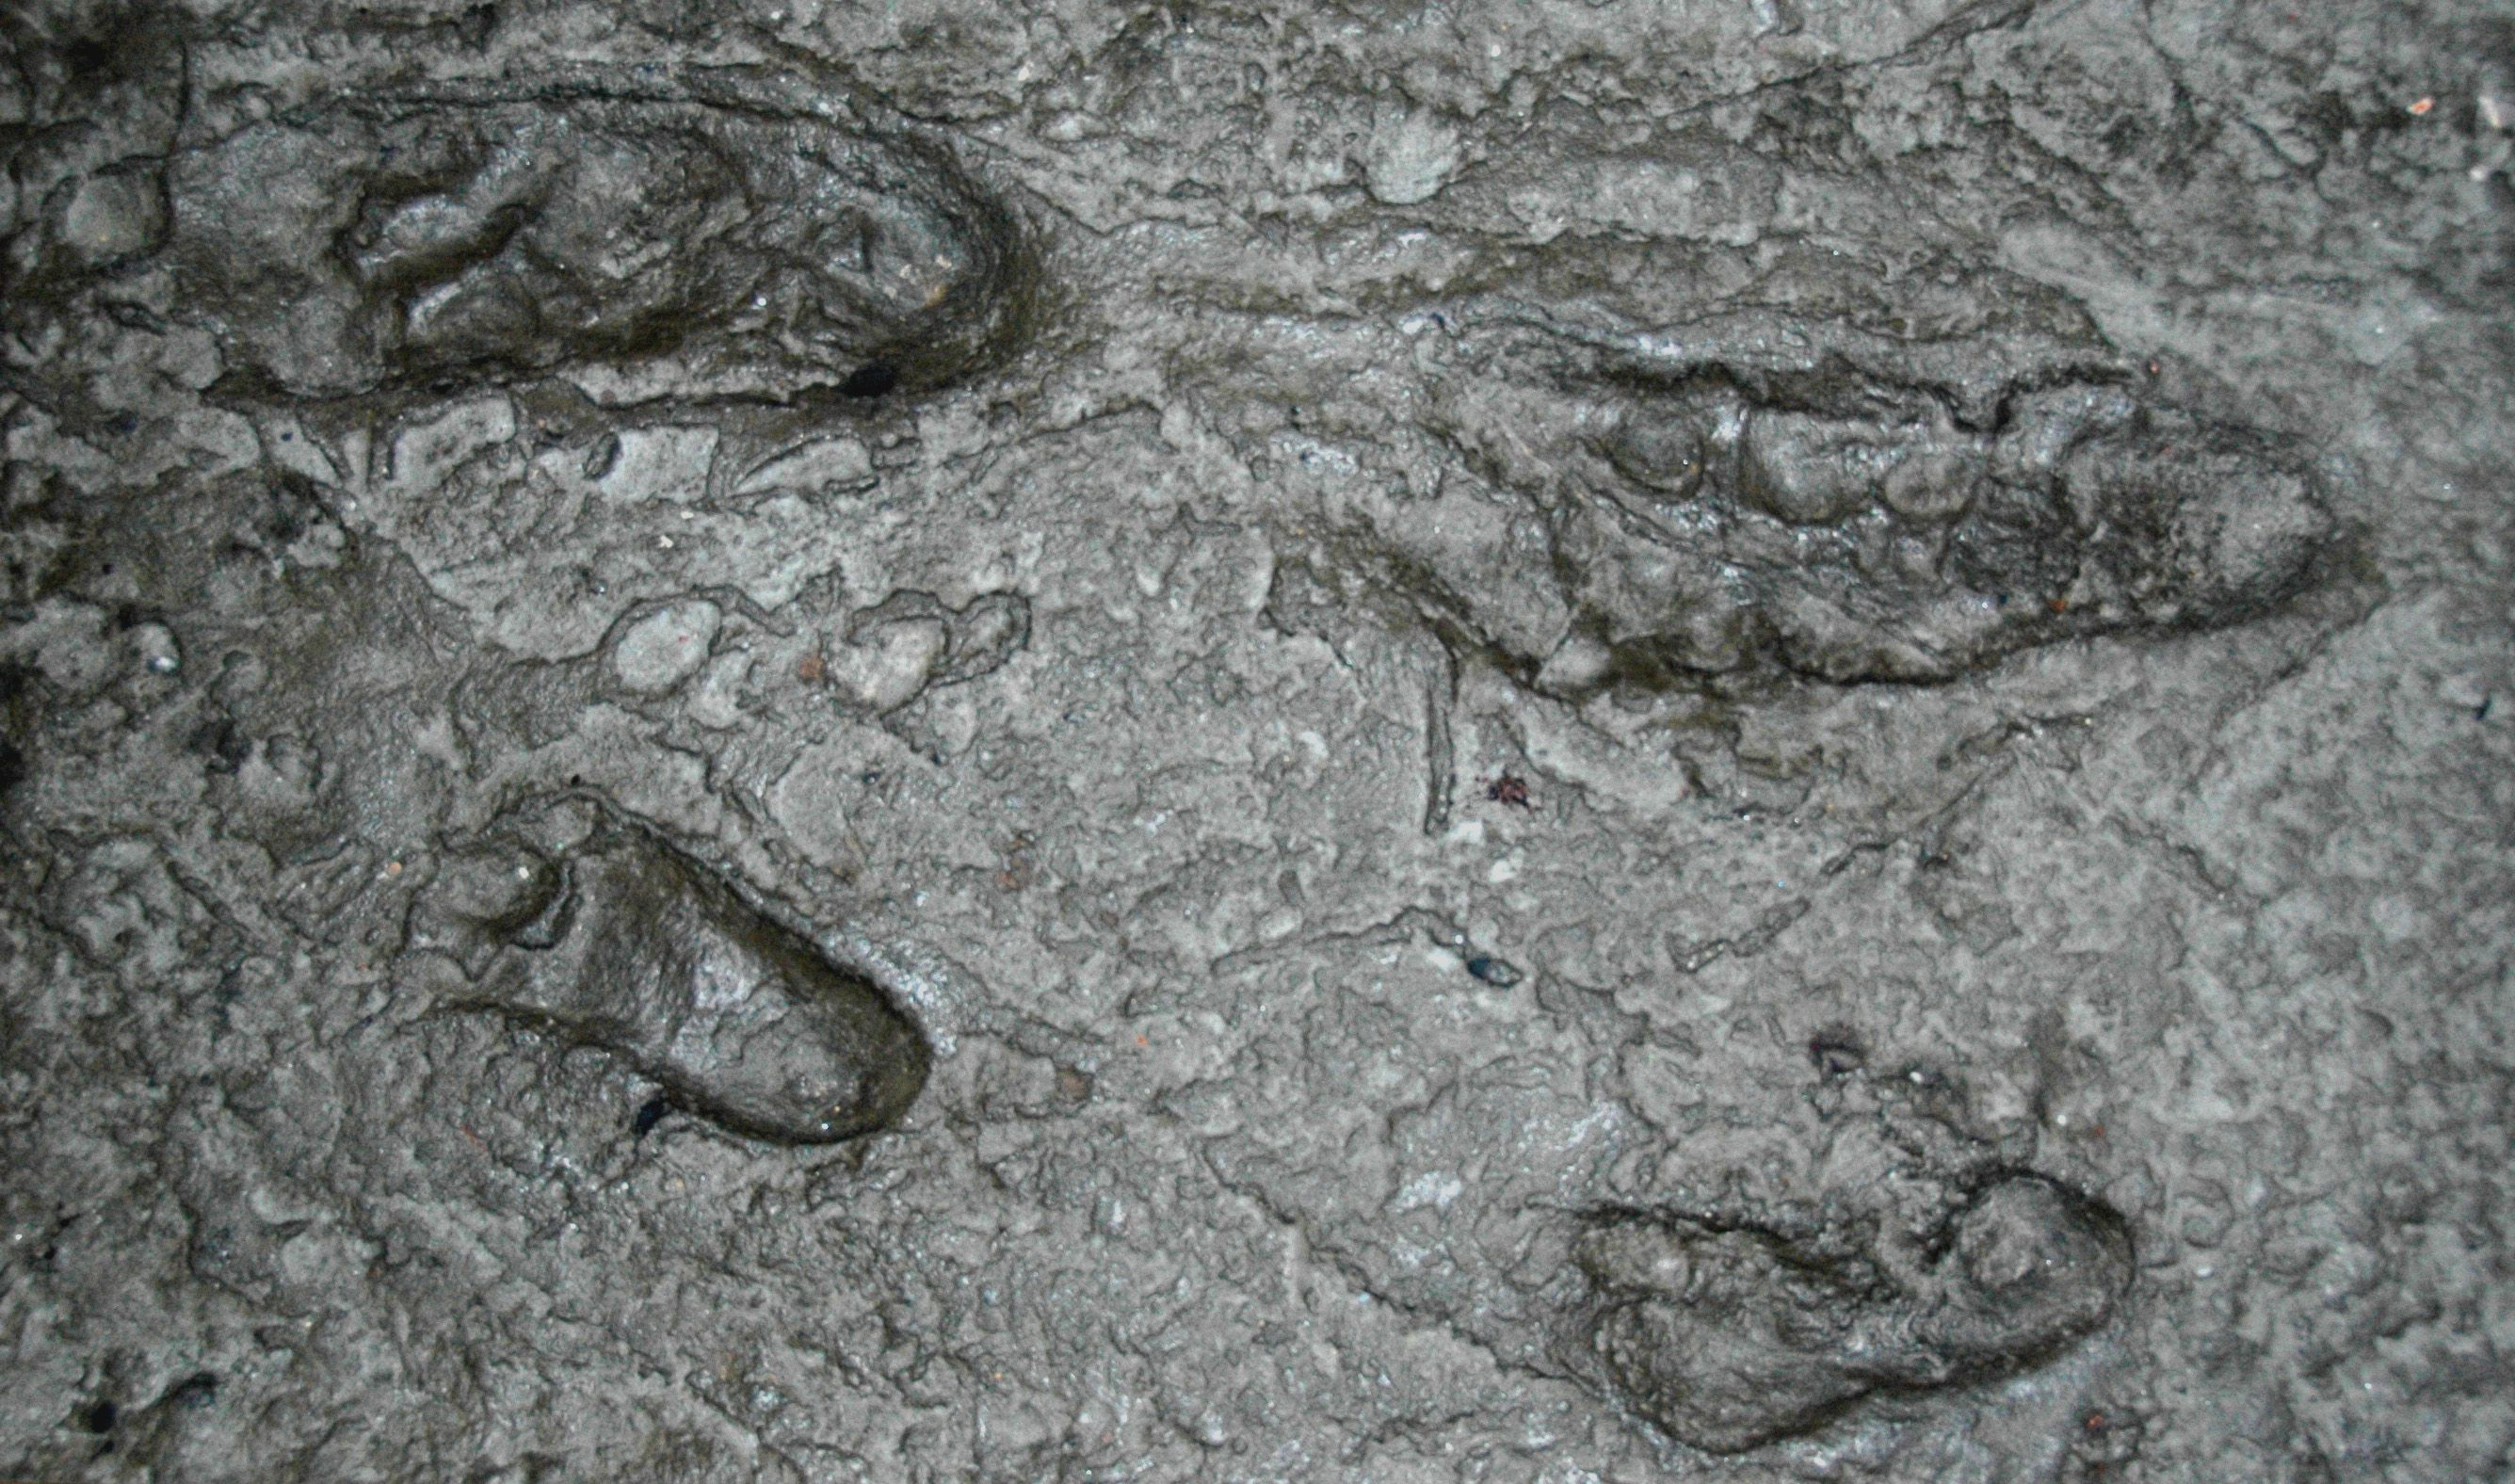 Who Made the Oldest Known Hominin Footprints at Laetoli?